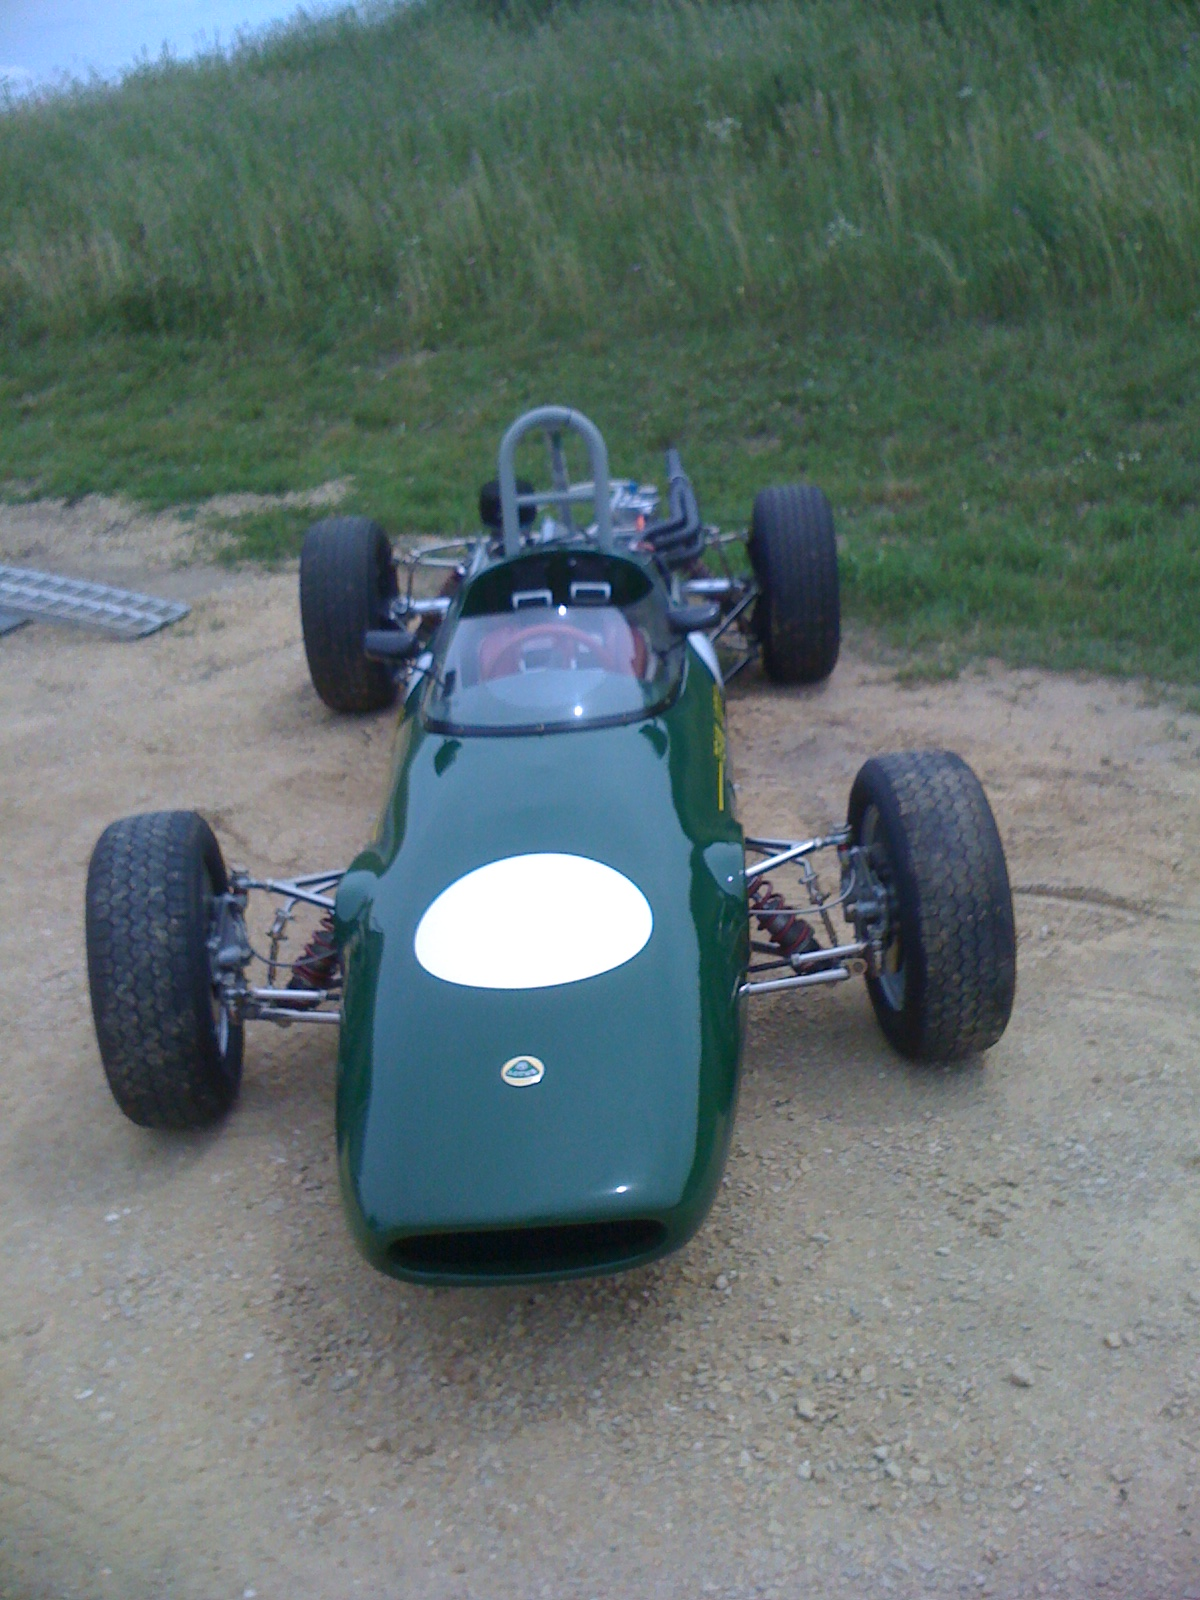 Lotus 51 Formula Ford for sale - LotusTalk - The Lotus Cars Community